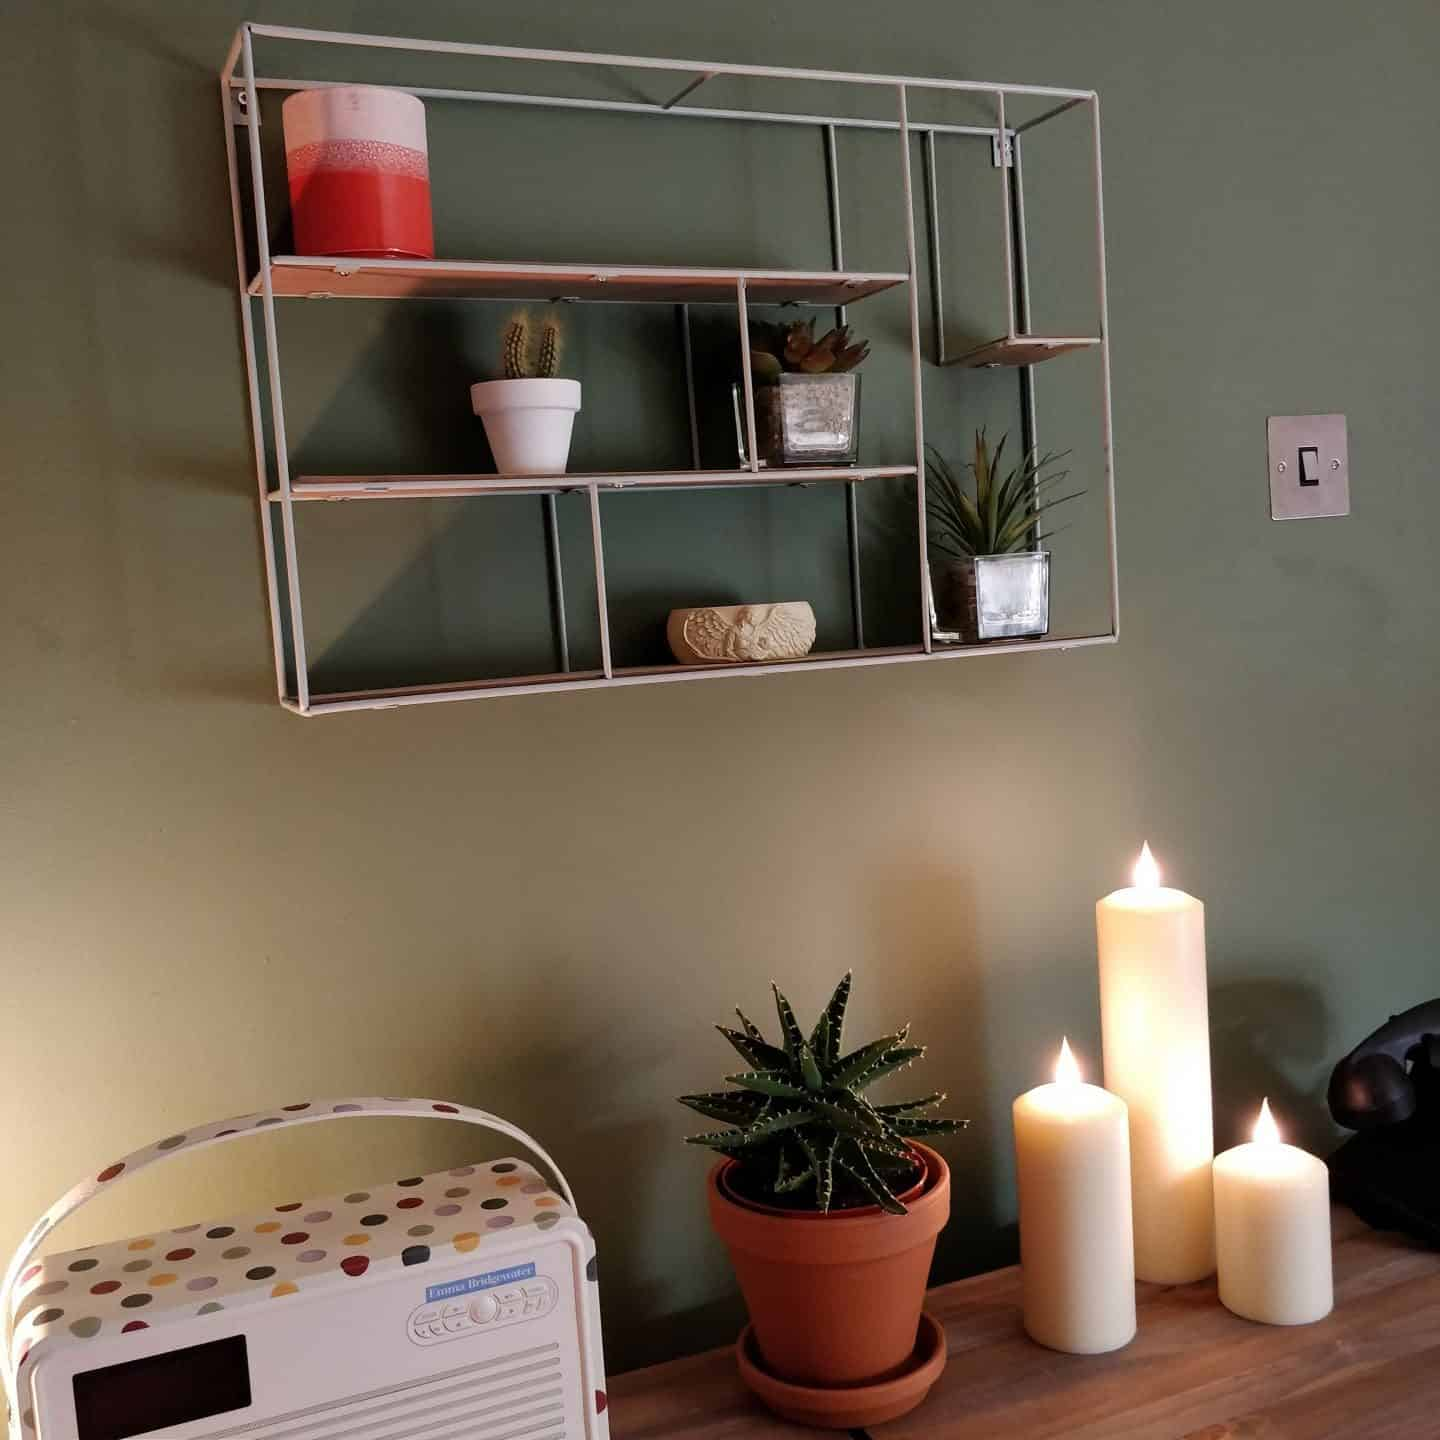 Faux LED candles from Candled on a sideboard 10